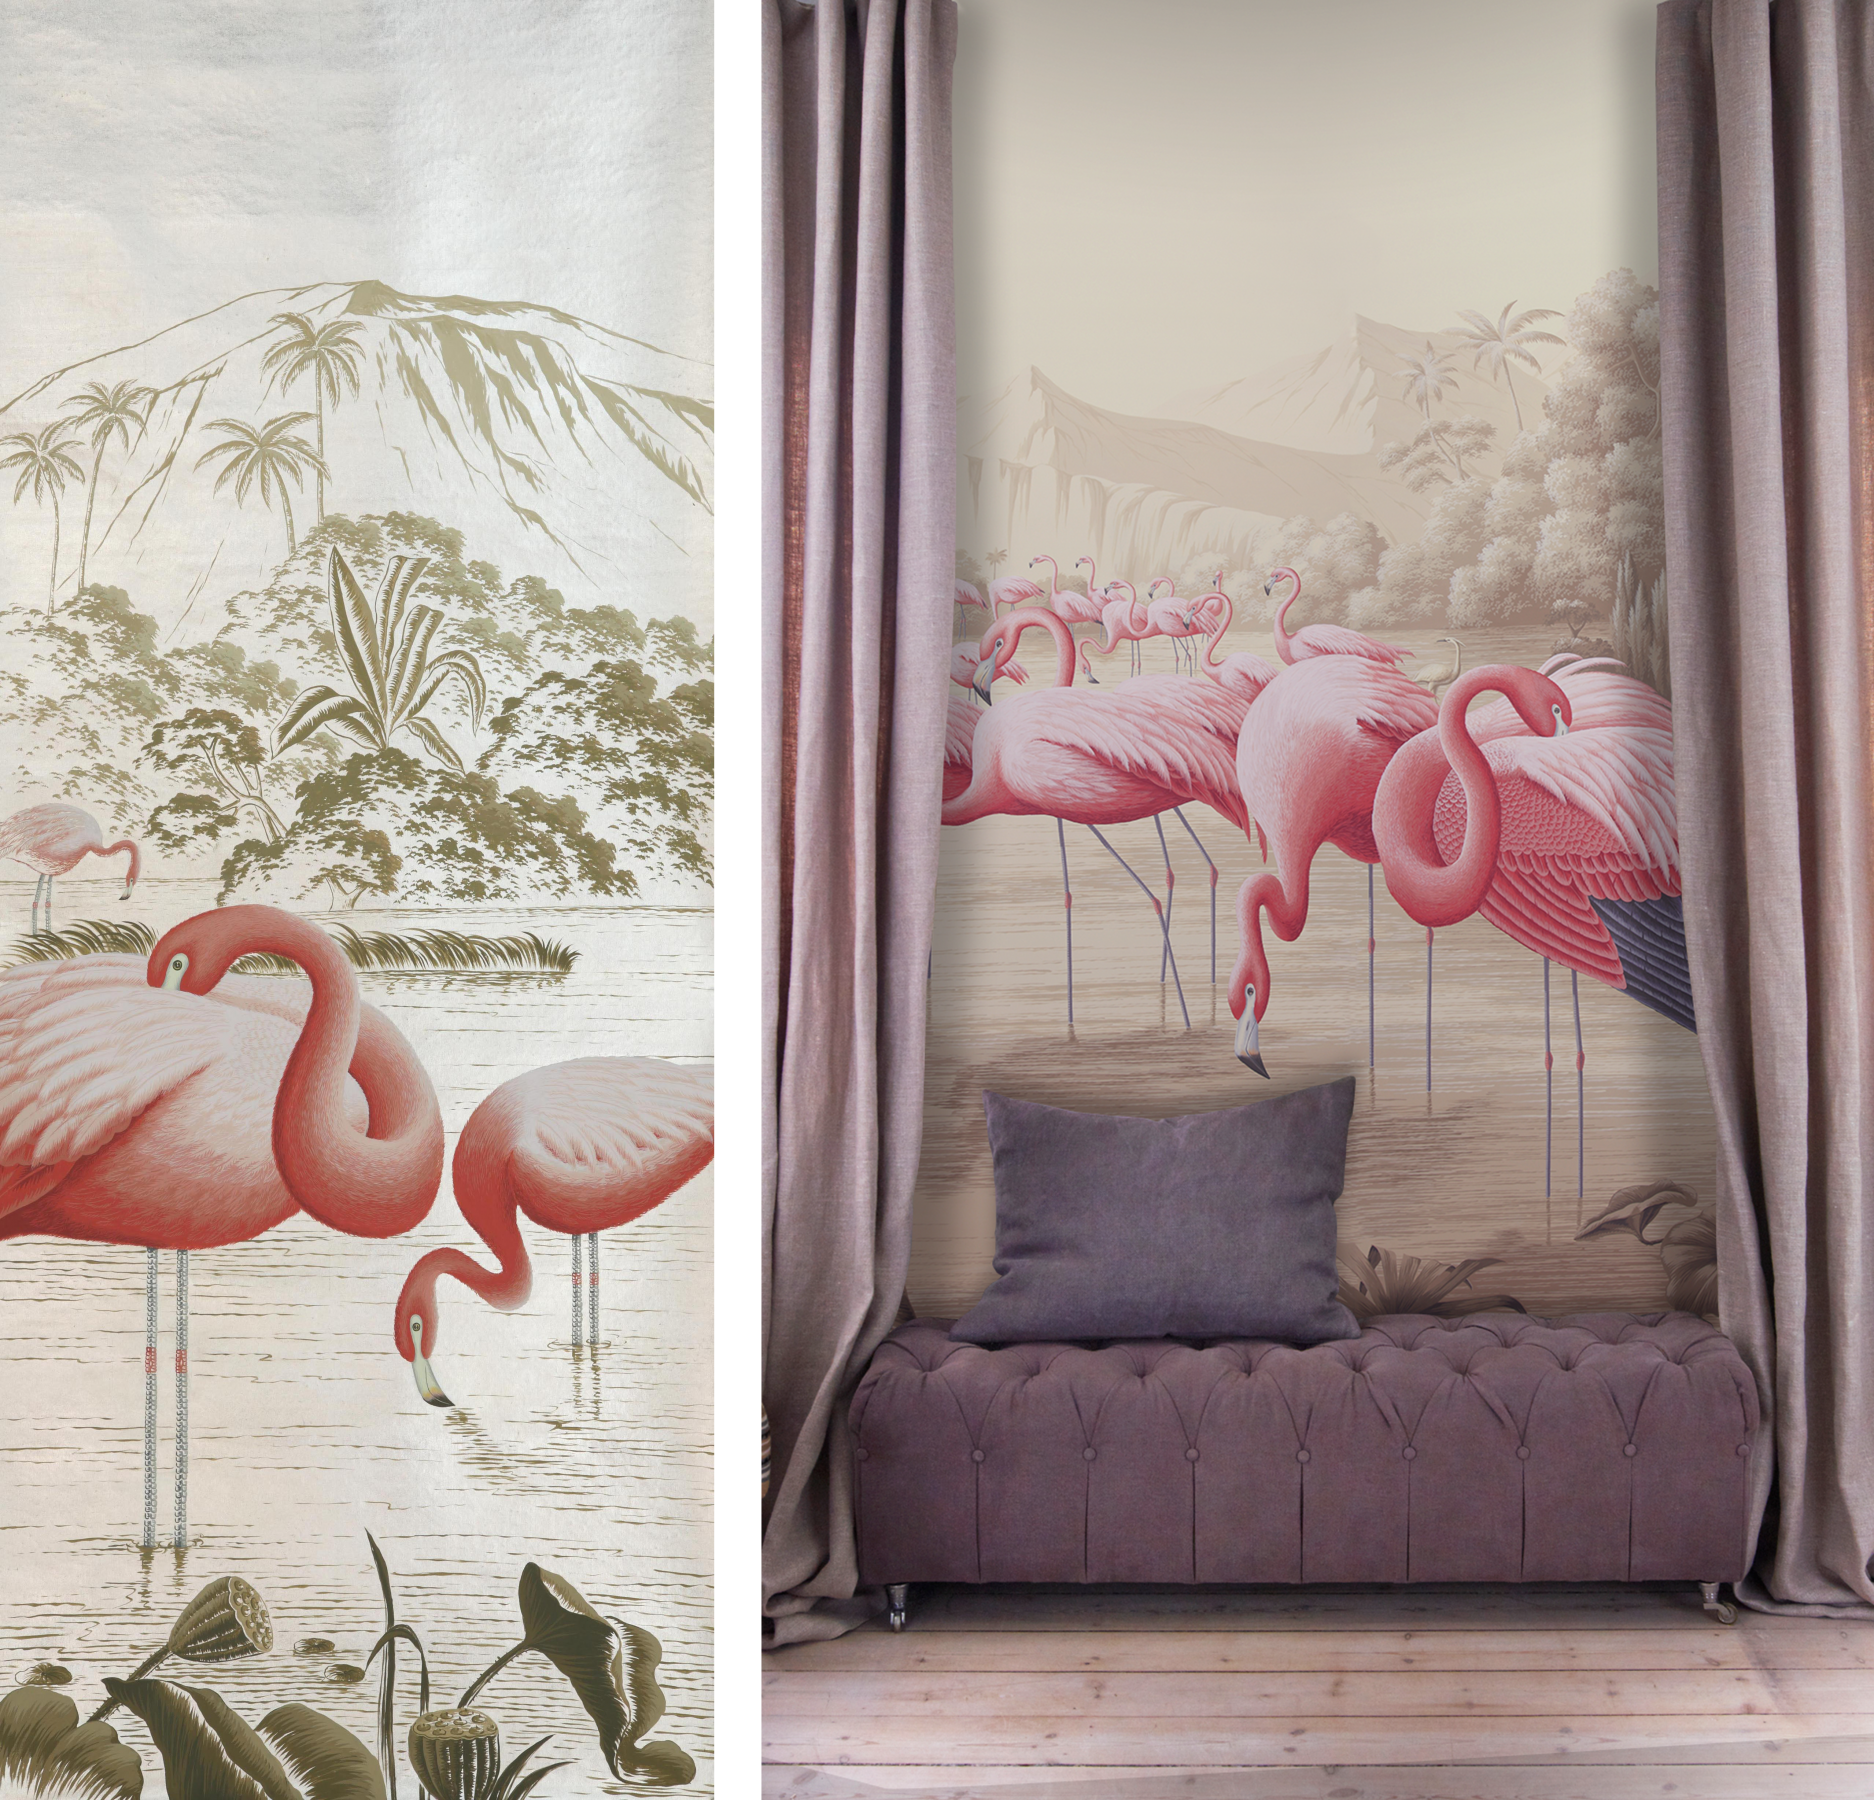 9_de_gournays_new_flamingos_design_in_original_design_colours_on_sterling_silver_gilded_paper_and_also_shown_on_sepia_scenic_paper